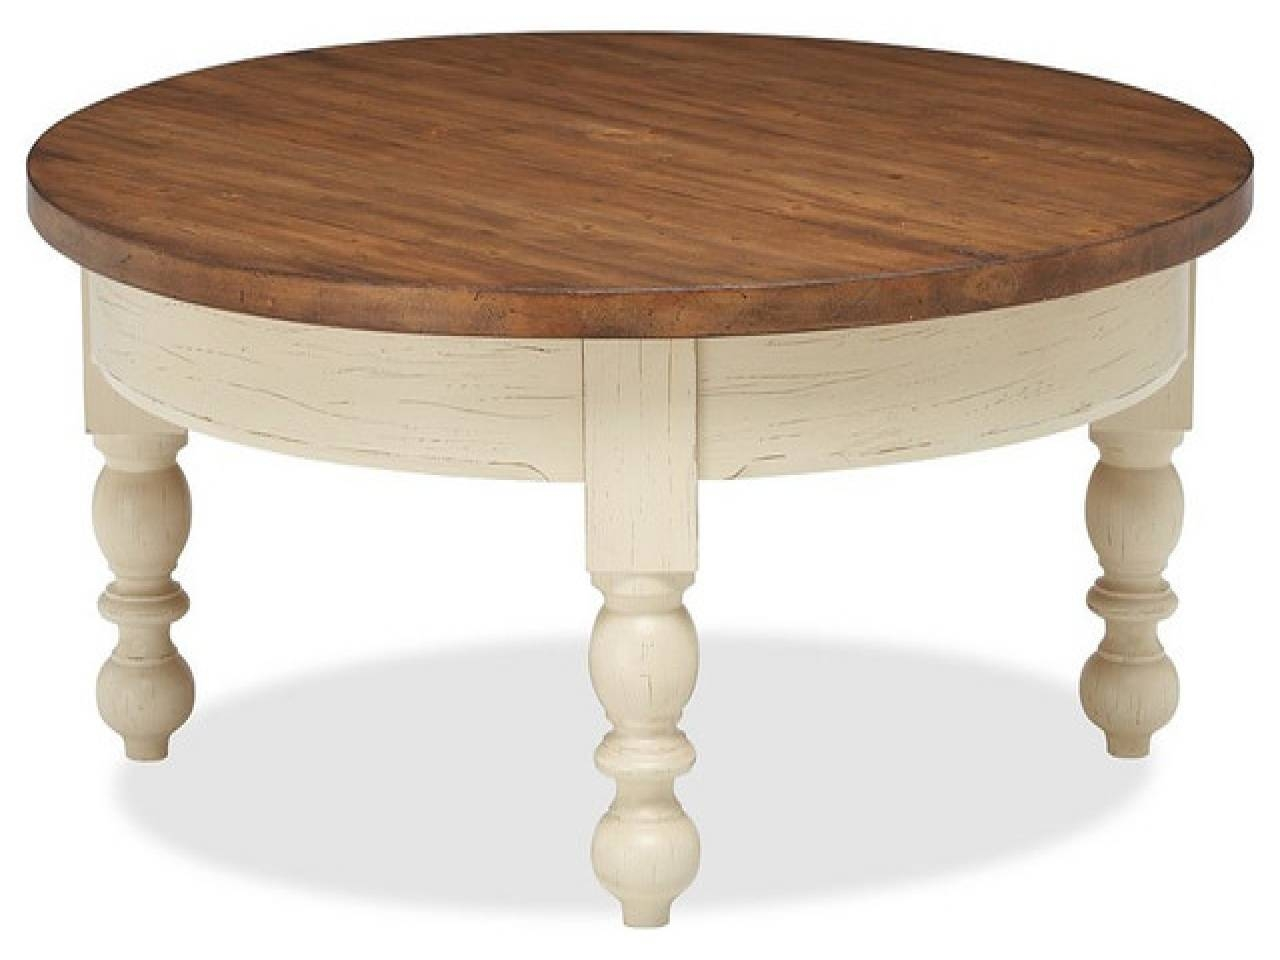 The Modern Design For Round Coffee Table | Newcoffeetable pertaining to Round Coffee Tables (Image 28 of 30)